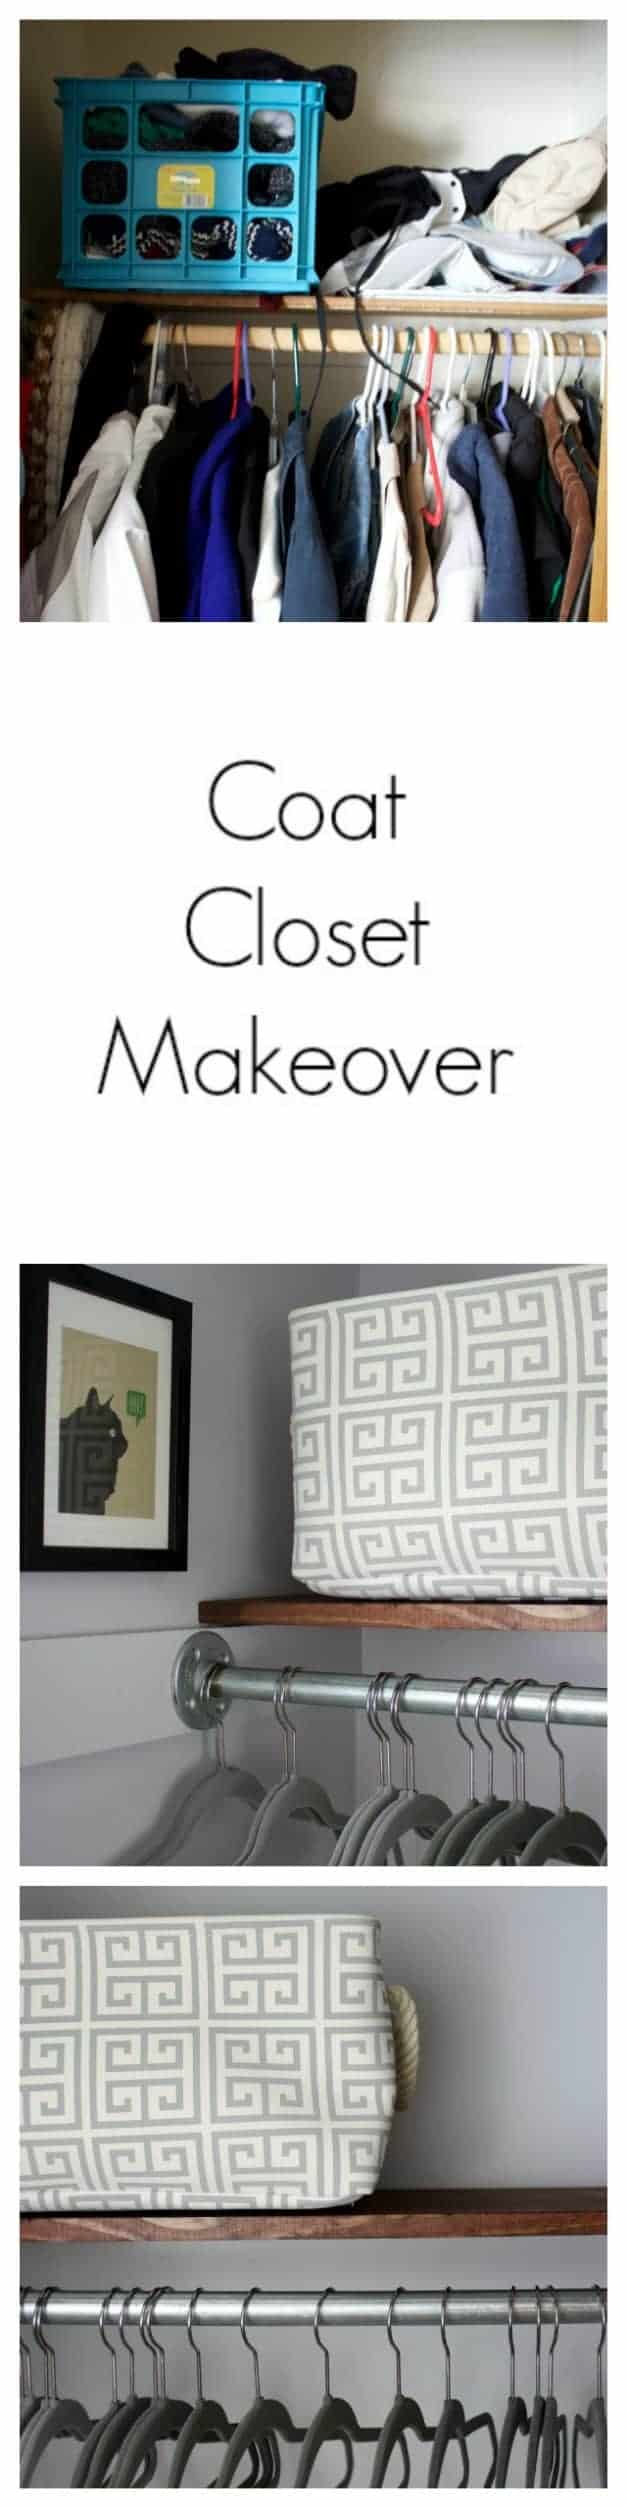 See my new coat closet makeover and how I gave it more updated look. It was so dreary before, and now it's a pretty place to look each time I open the door.